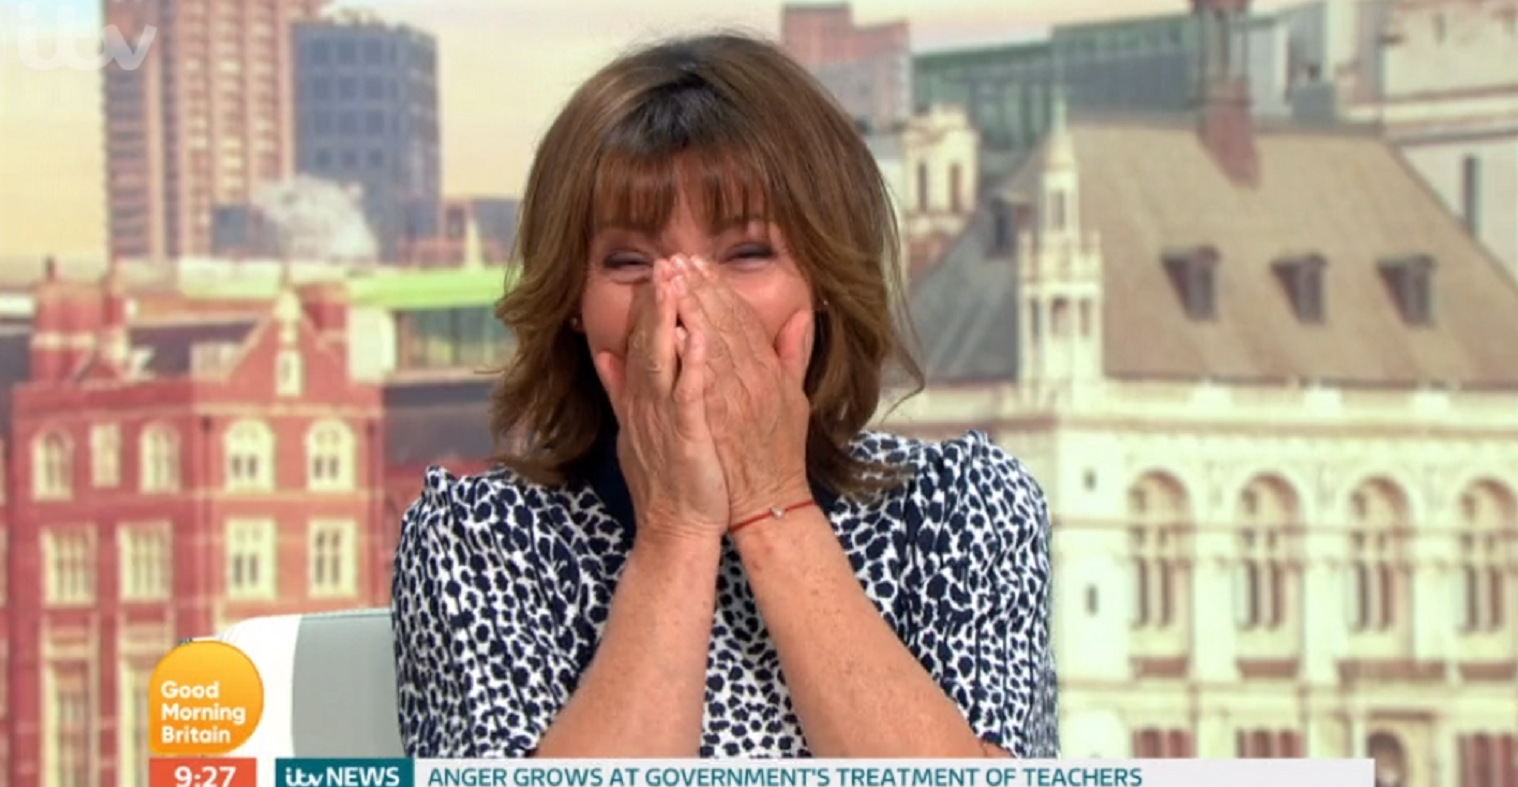 Good Morning Britain: Lorraine Kelly makes Prince Harry and Meghan Markle blunder